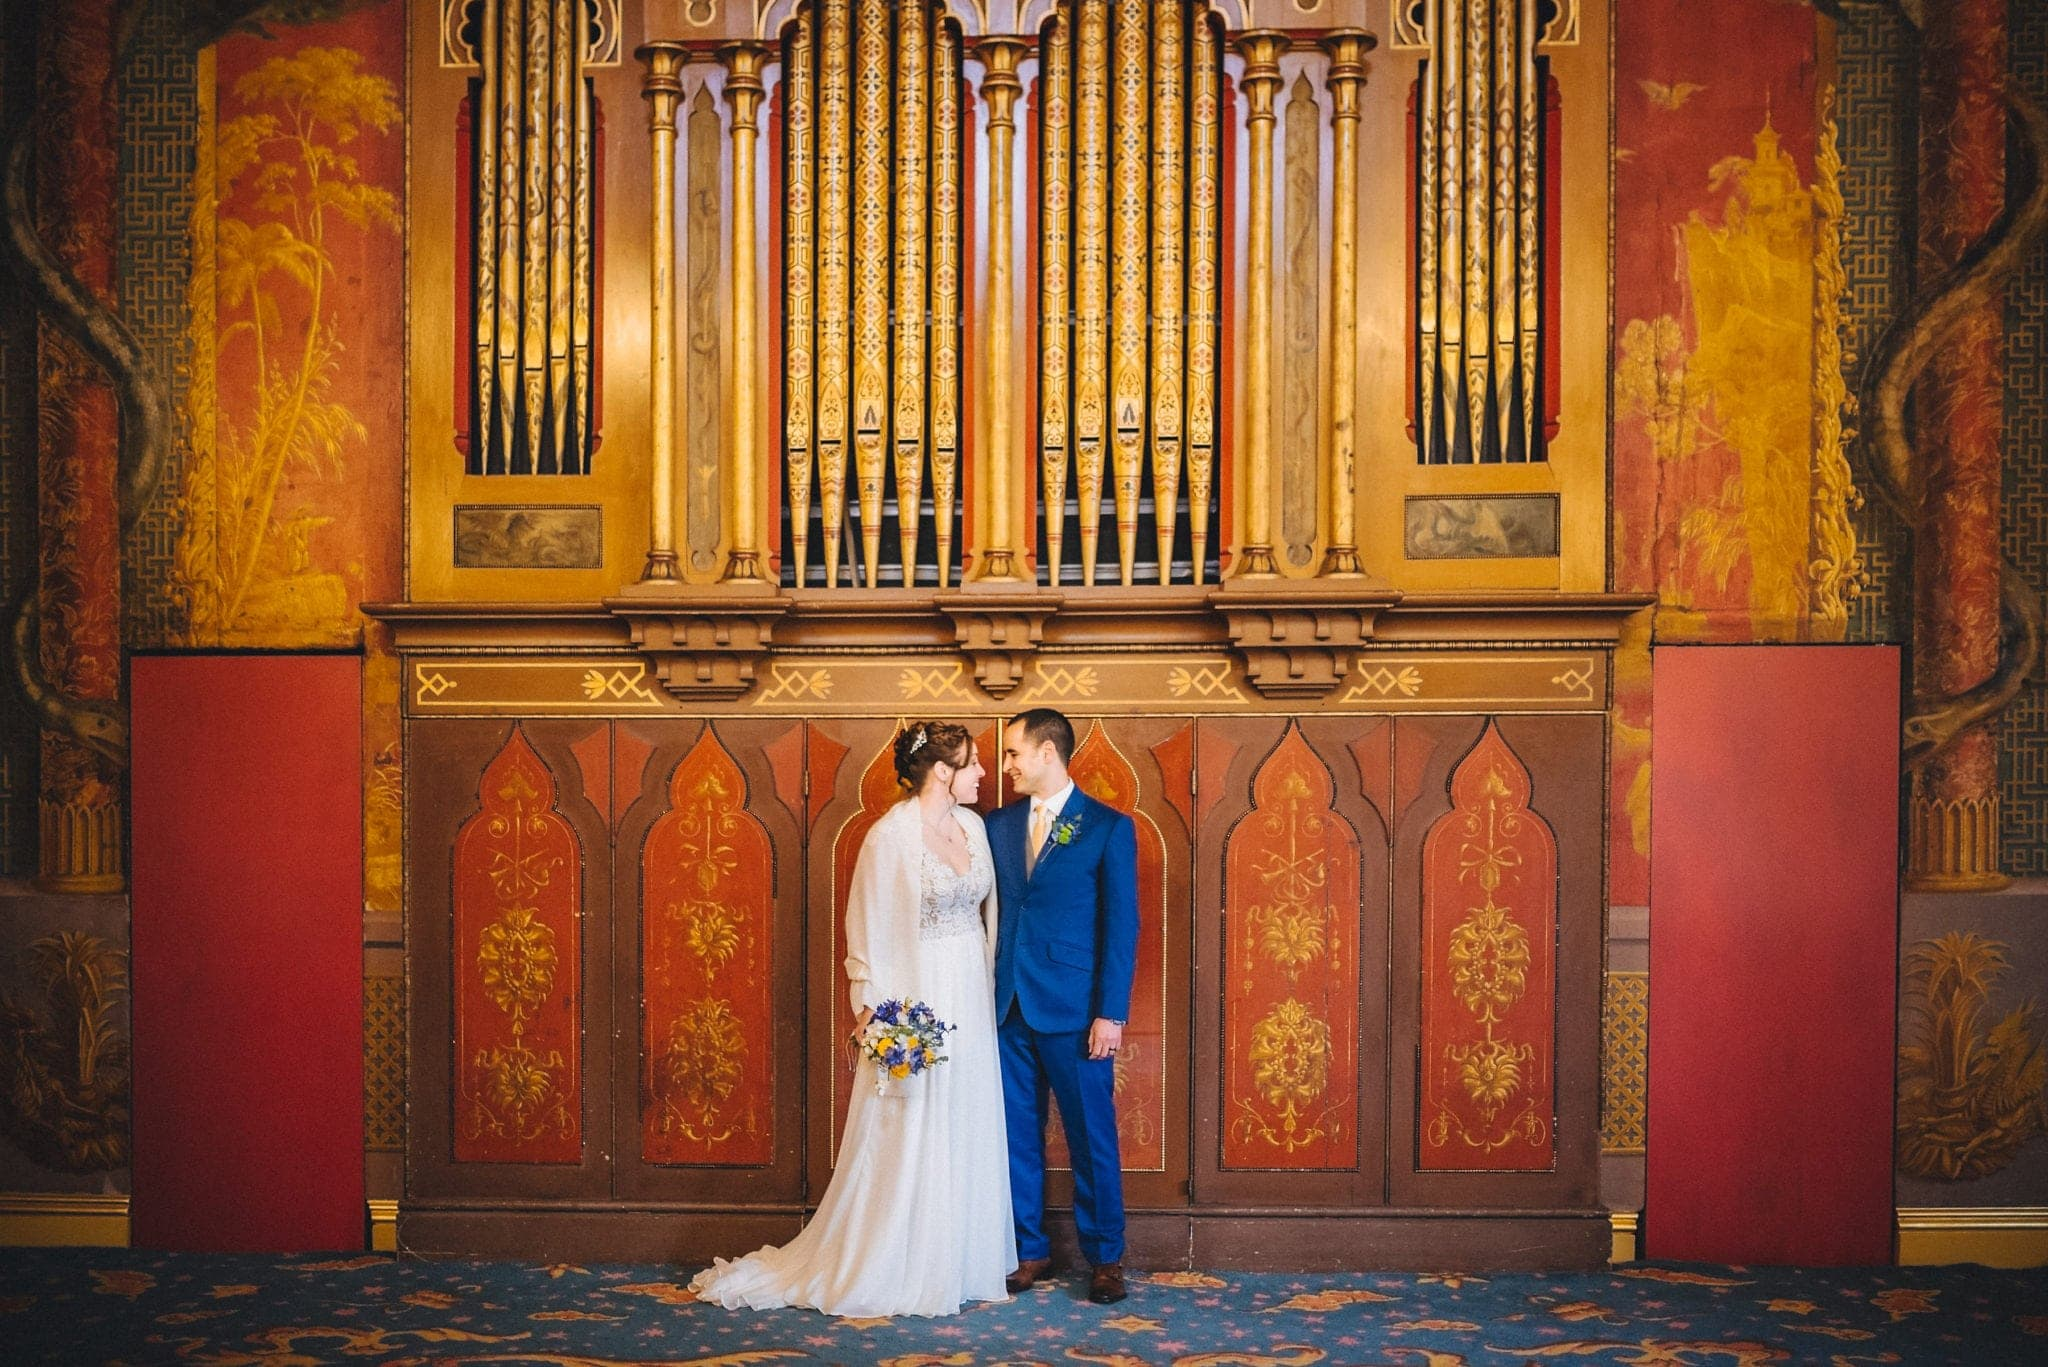 Bride and groom stand in front of red and gold organ in Brighton Royal Pavilion